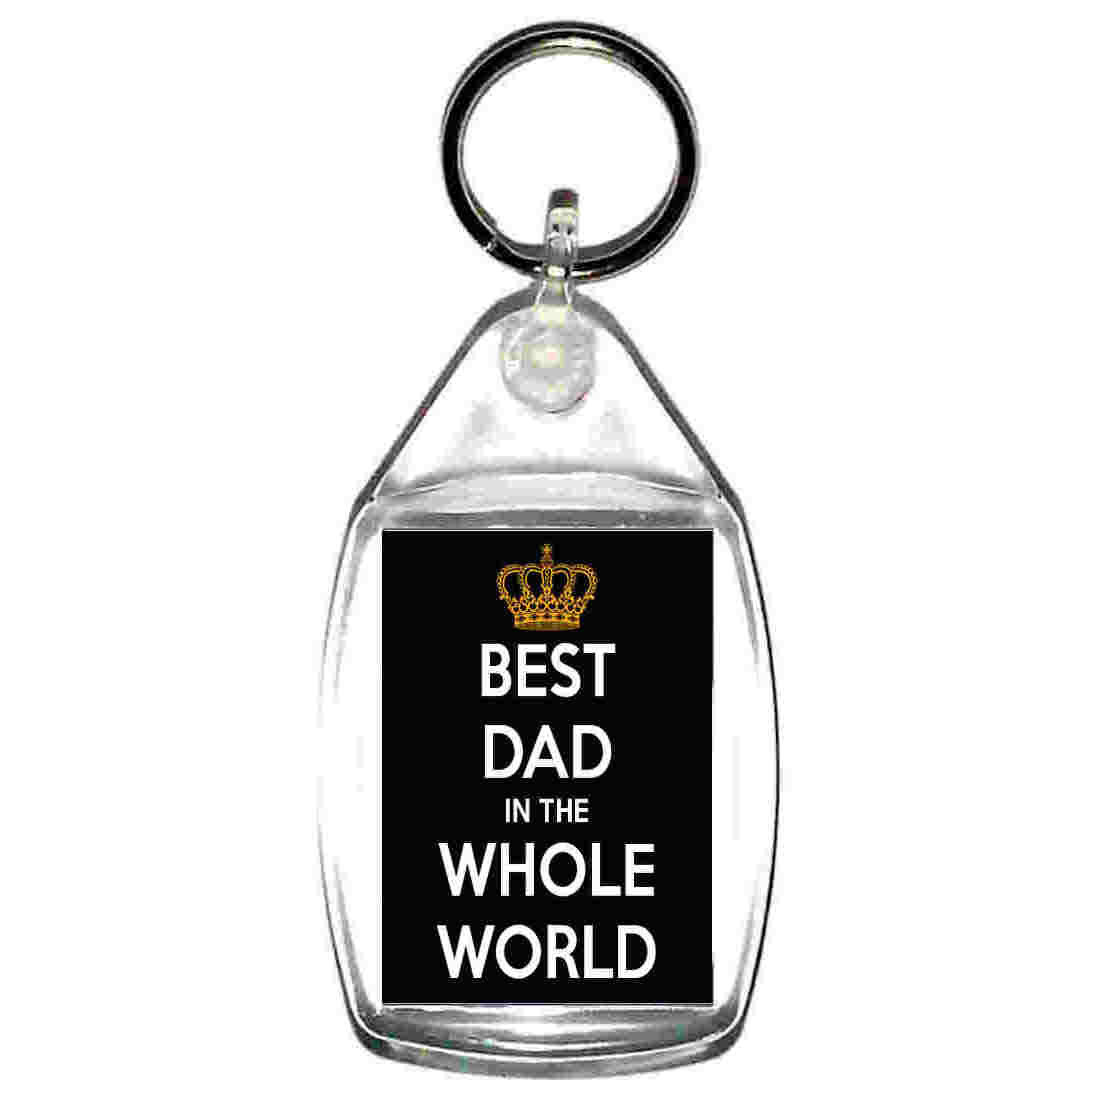 best dad in whole world  handmade in uk from uk made parts keyring, keyfob